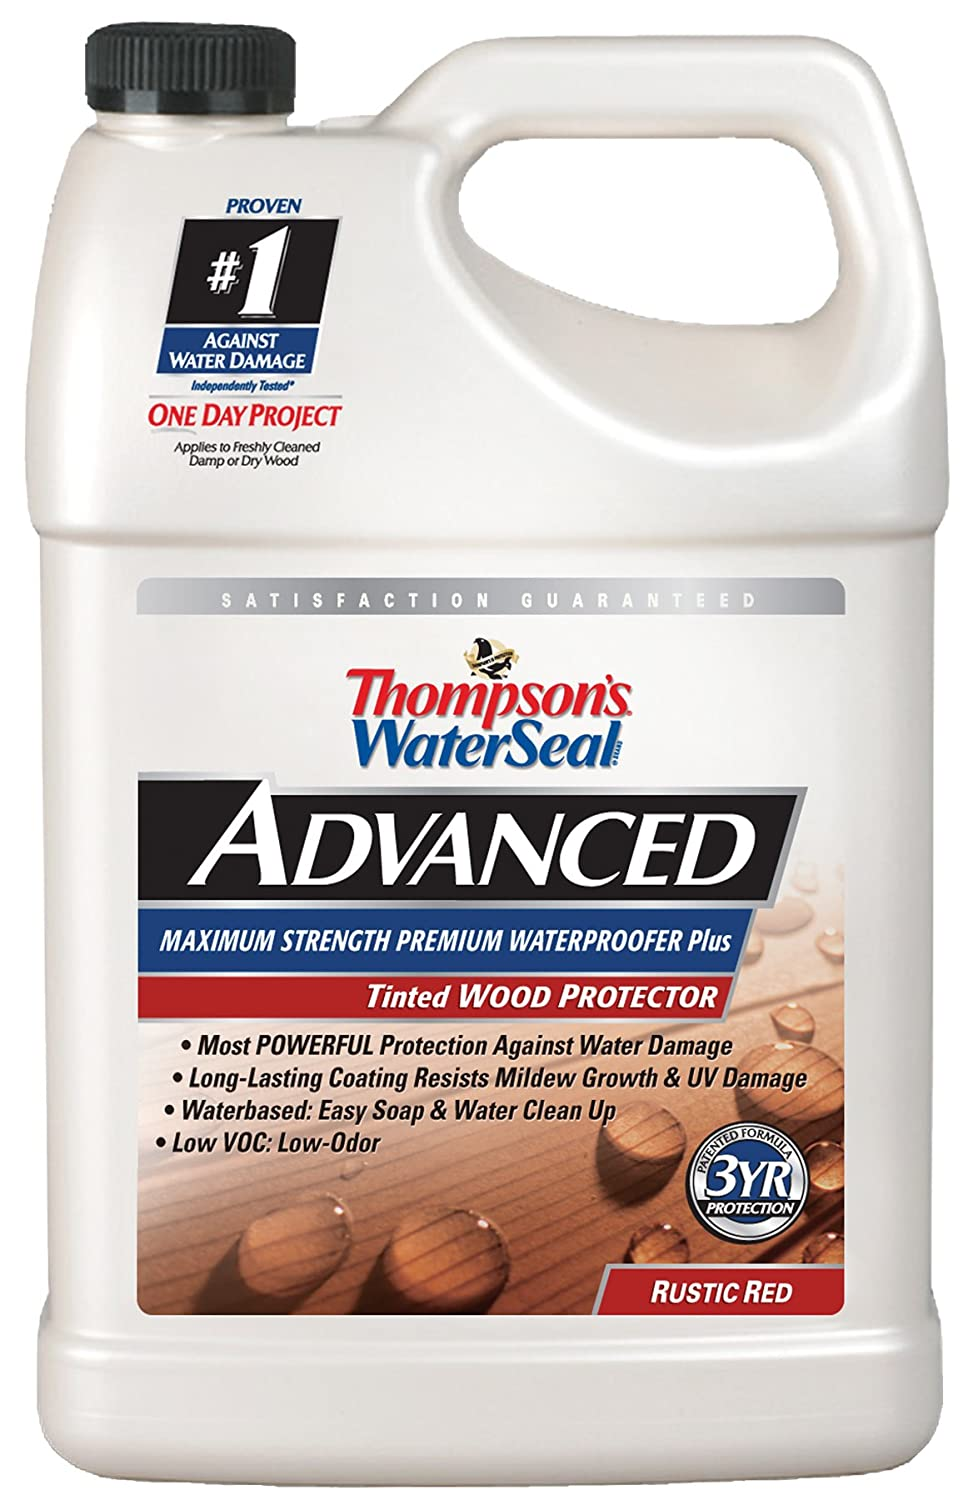 2. Thompsons Water Seal A21741 1-Gallon Rustic Red Advanced Tinted Wood Protector